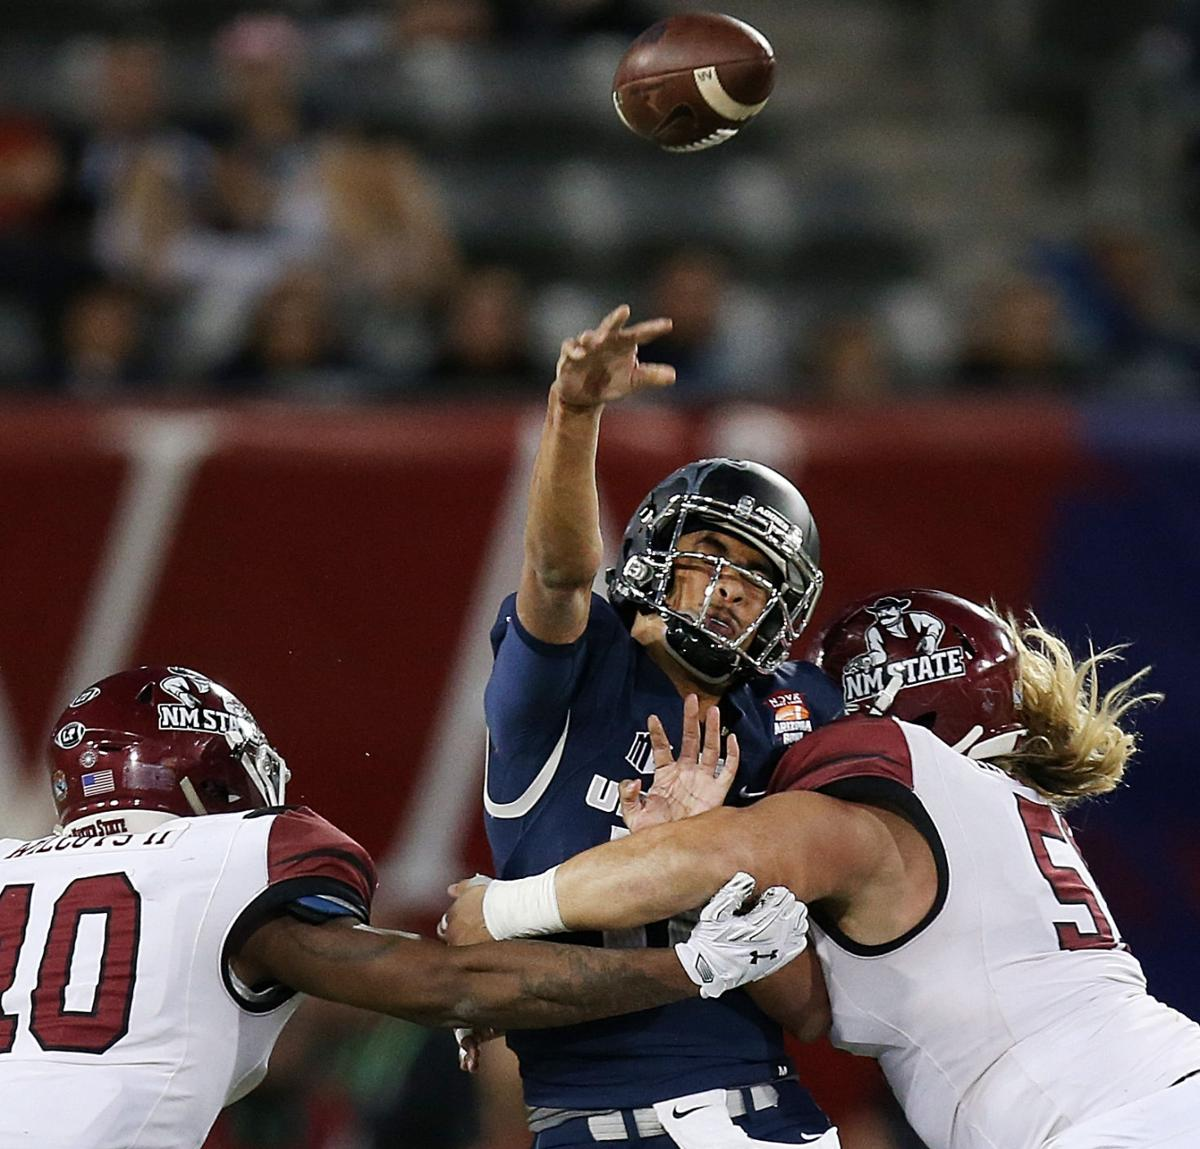 New Mexico State 26, Utah State 20